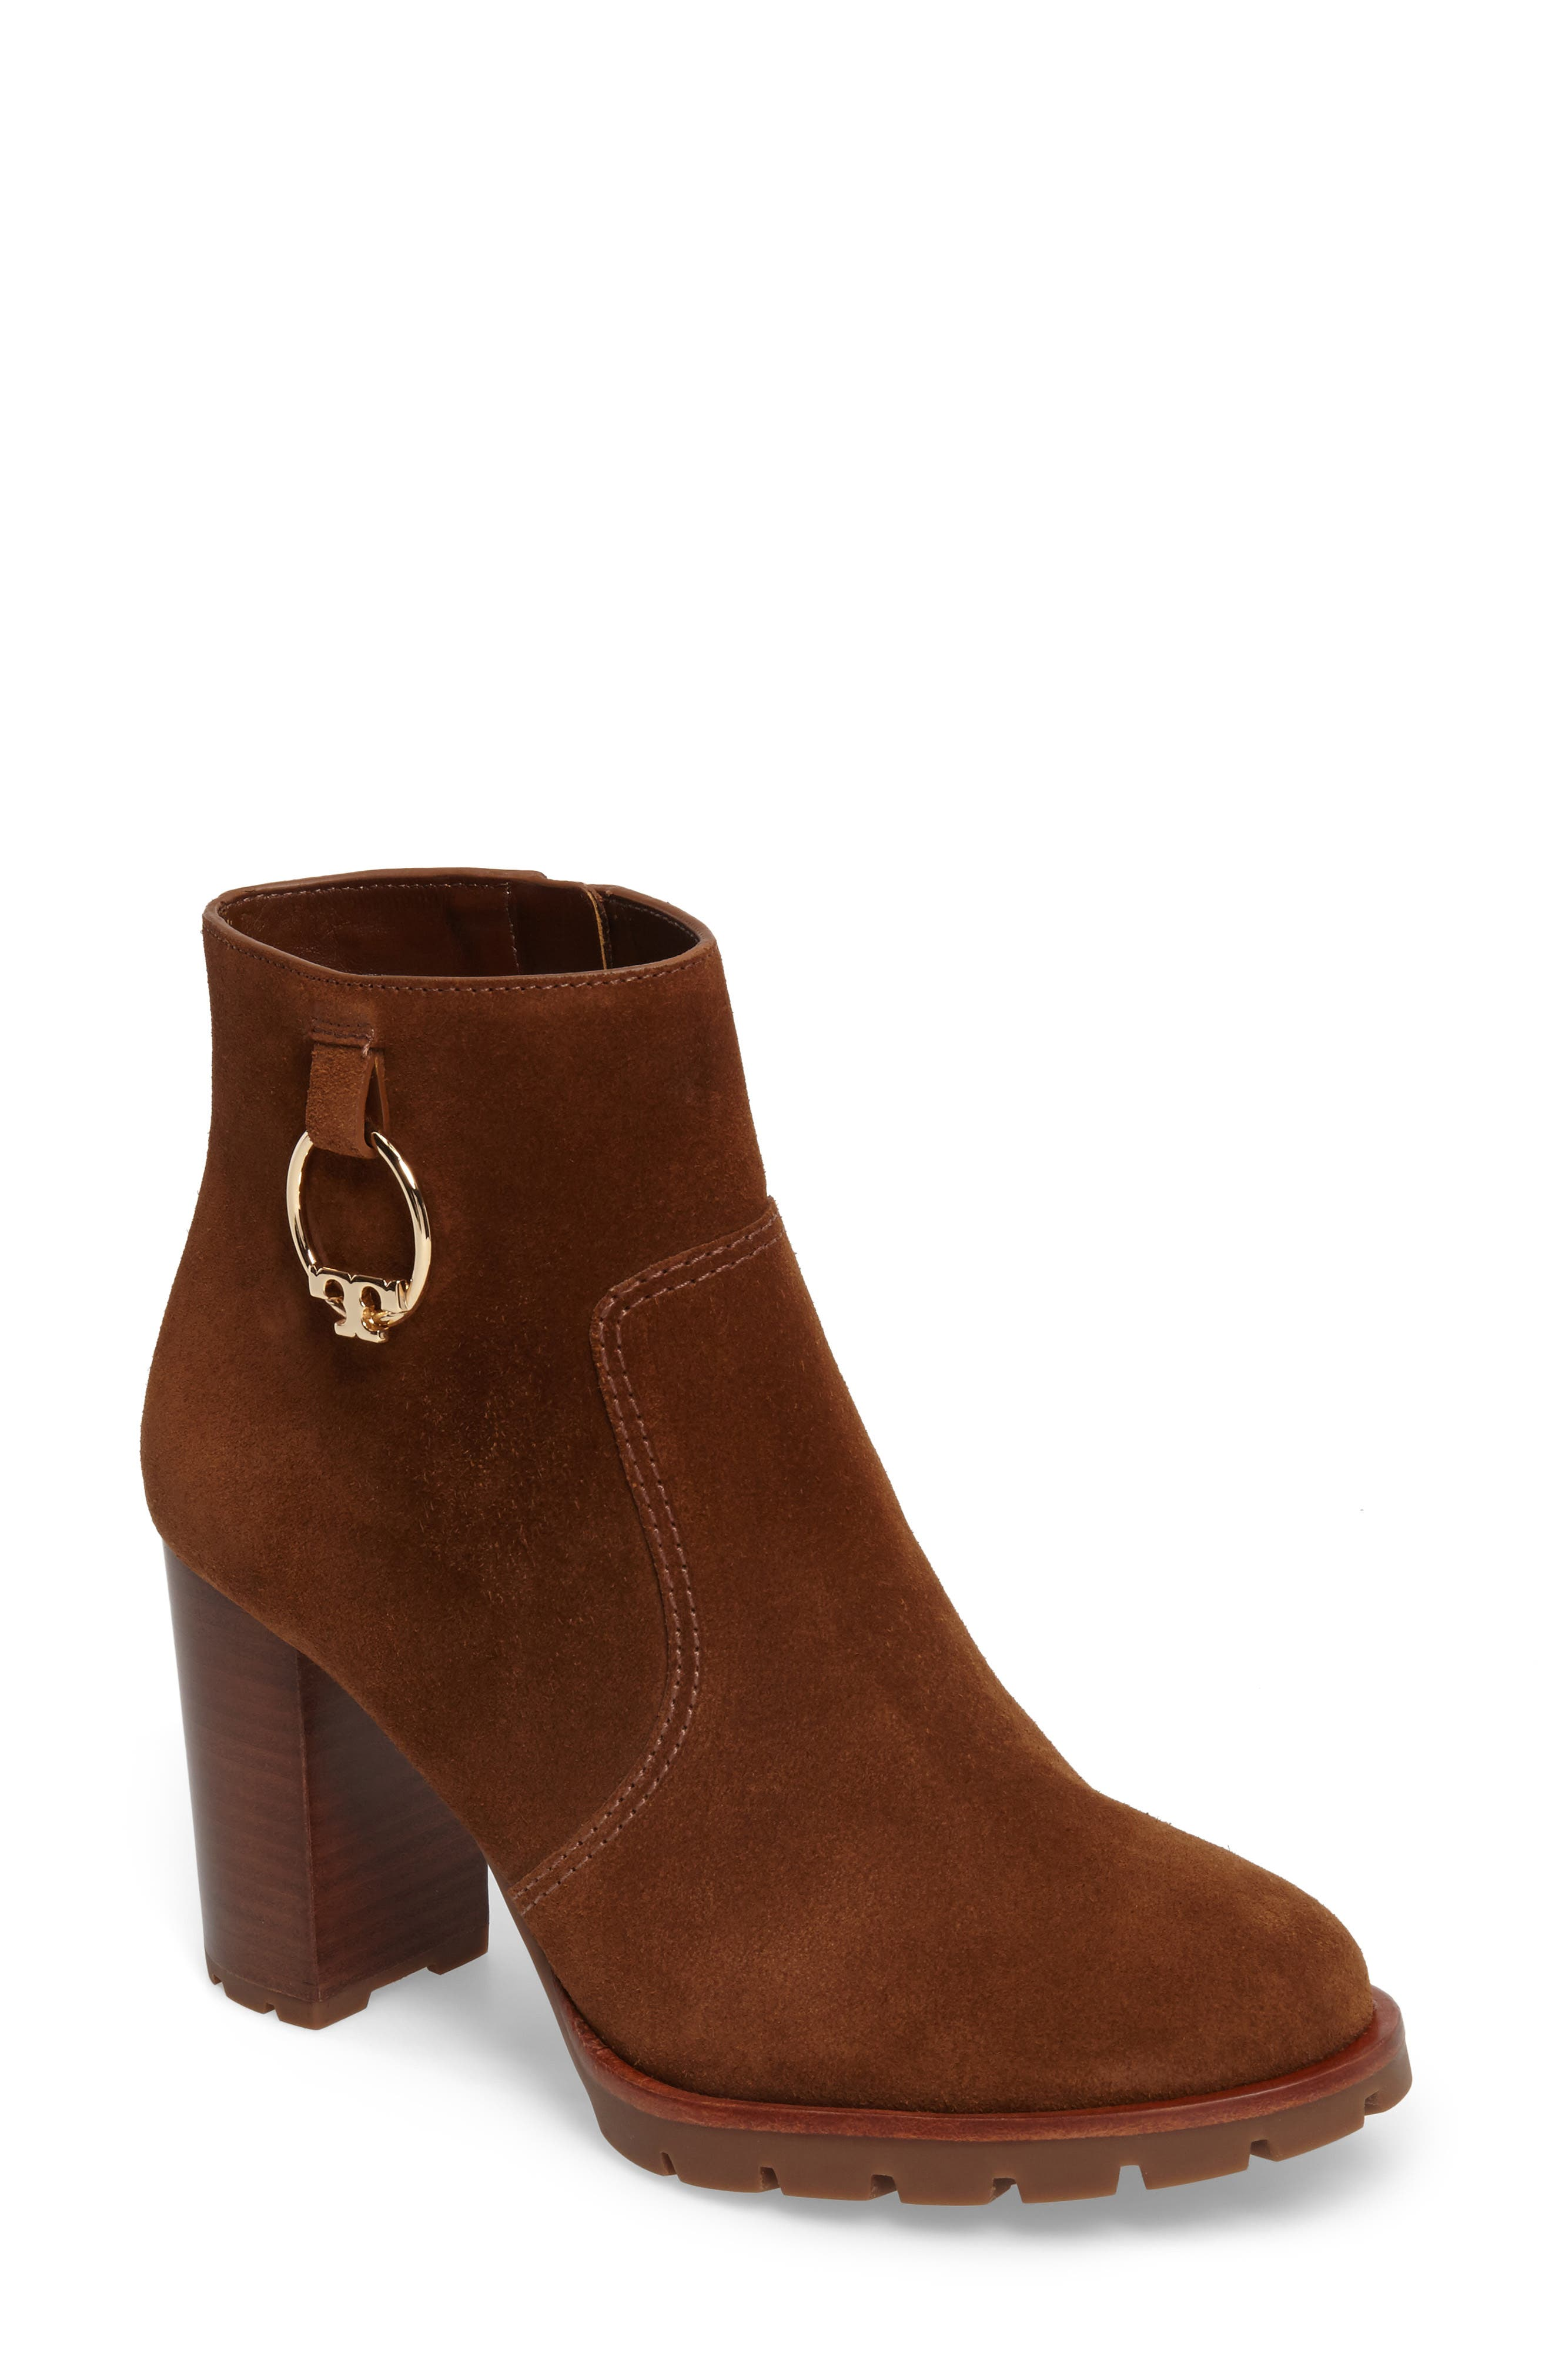 Sofia Lugged Logo Charm Bootie,                         Main,                         color, Festival Brown